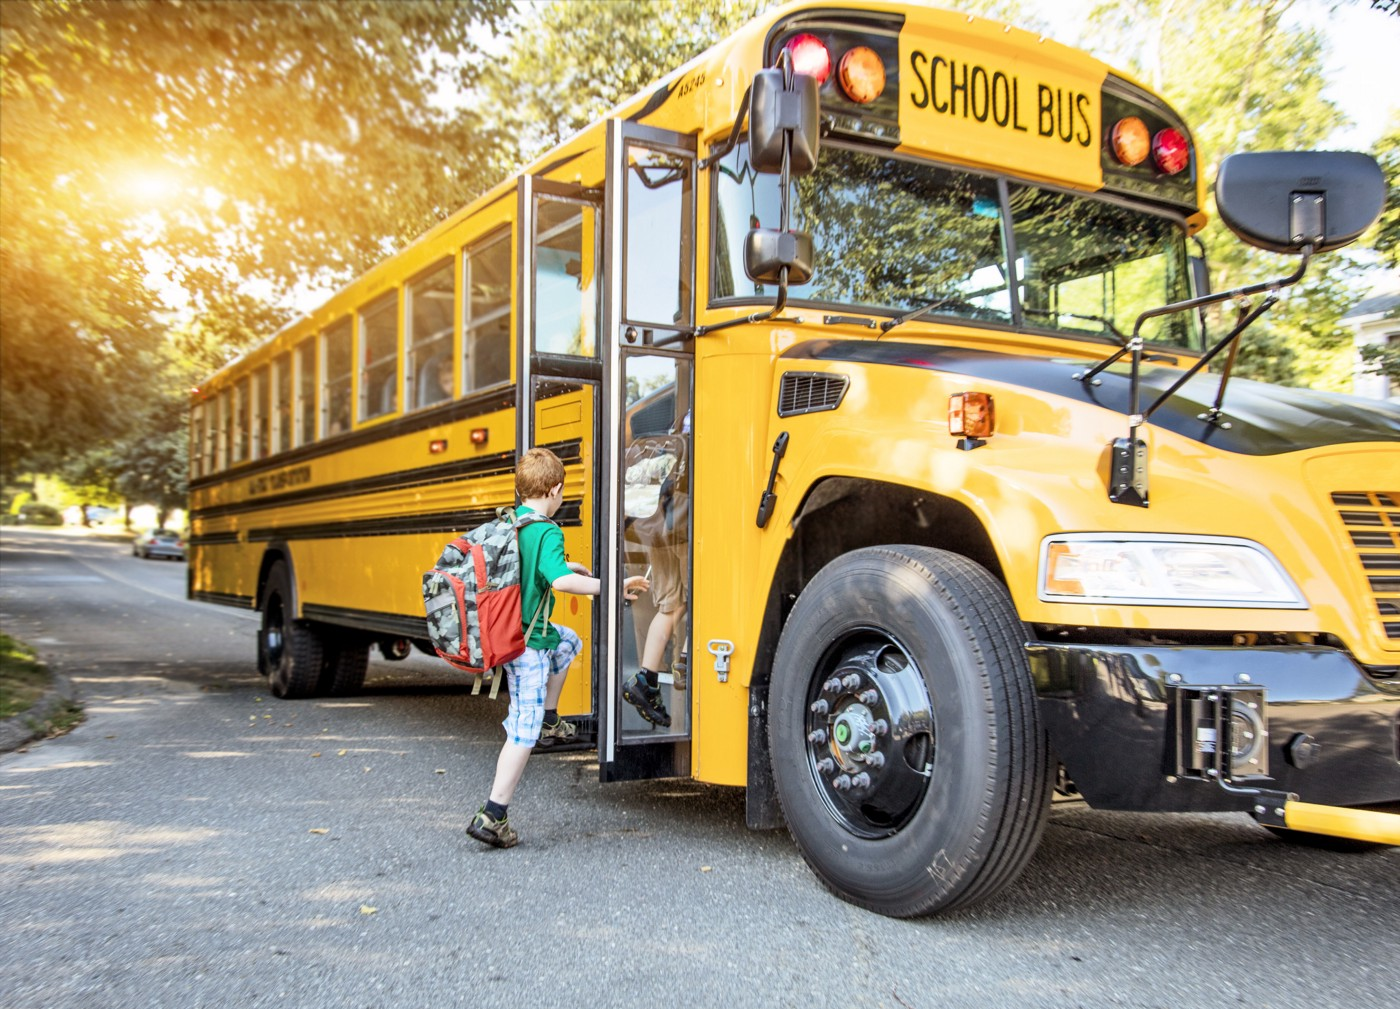 Boy with a backpack boarding a school bus